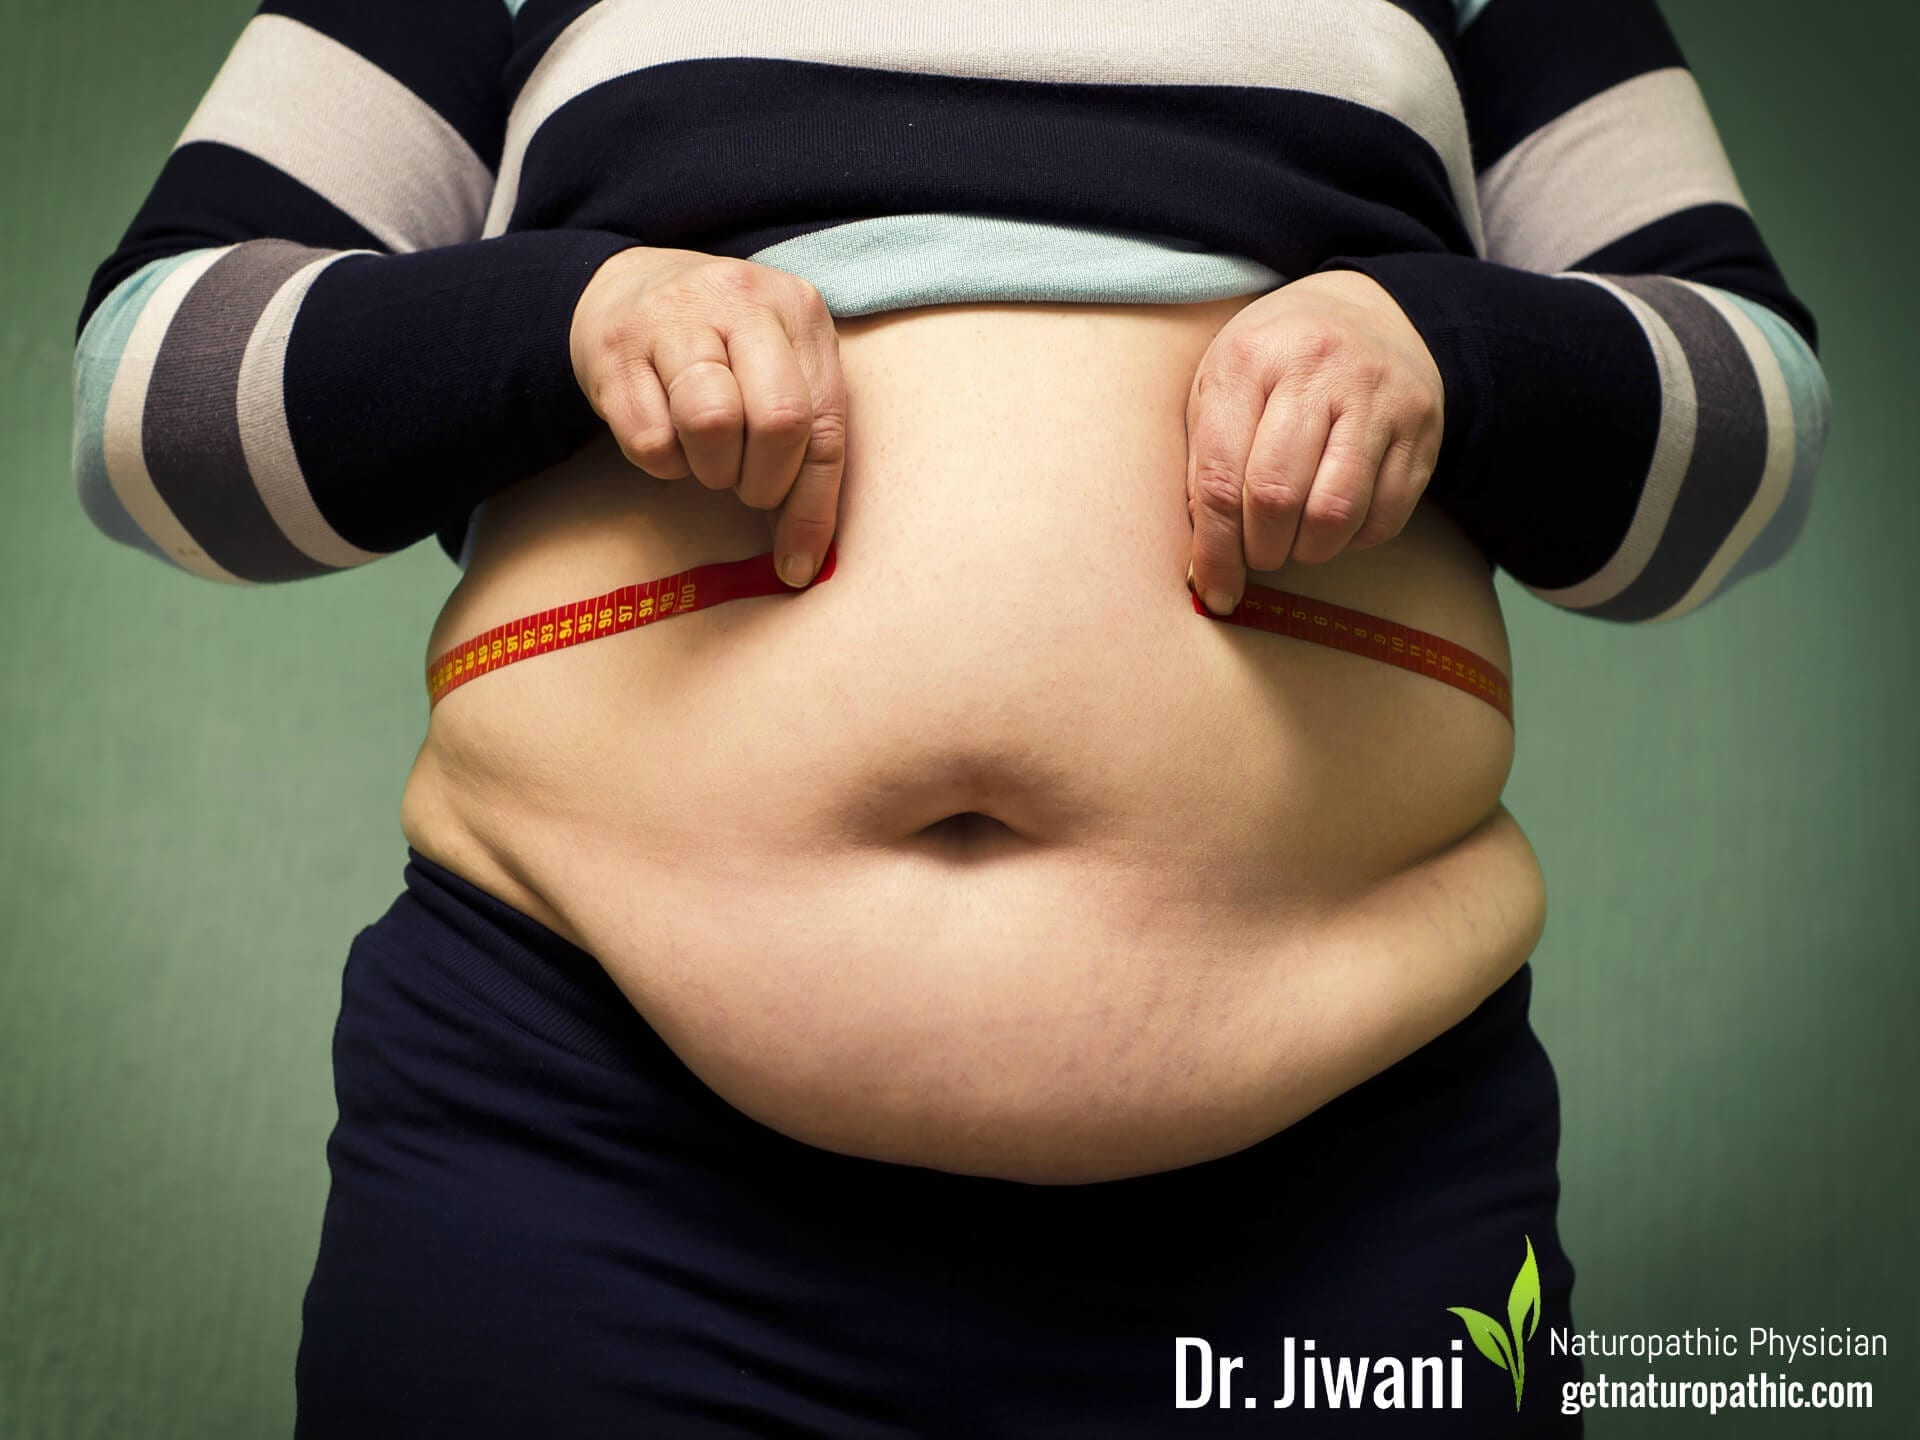 Weight Gain Obesity Sugar the Sweet Poison: The Alarming Ways Sugar Damages Your Body & Brain* | Dr. Jiwani's Naturopathic Nuggets Blog